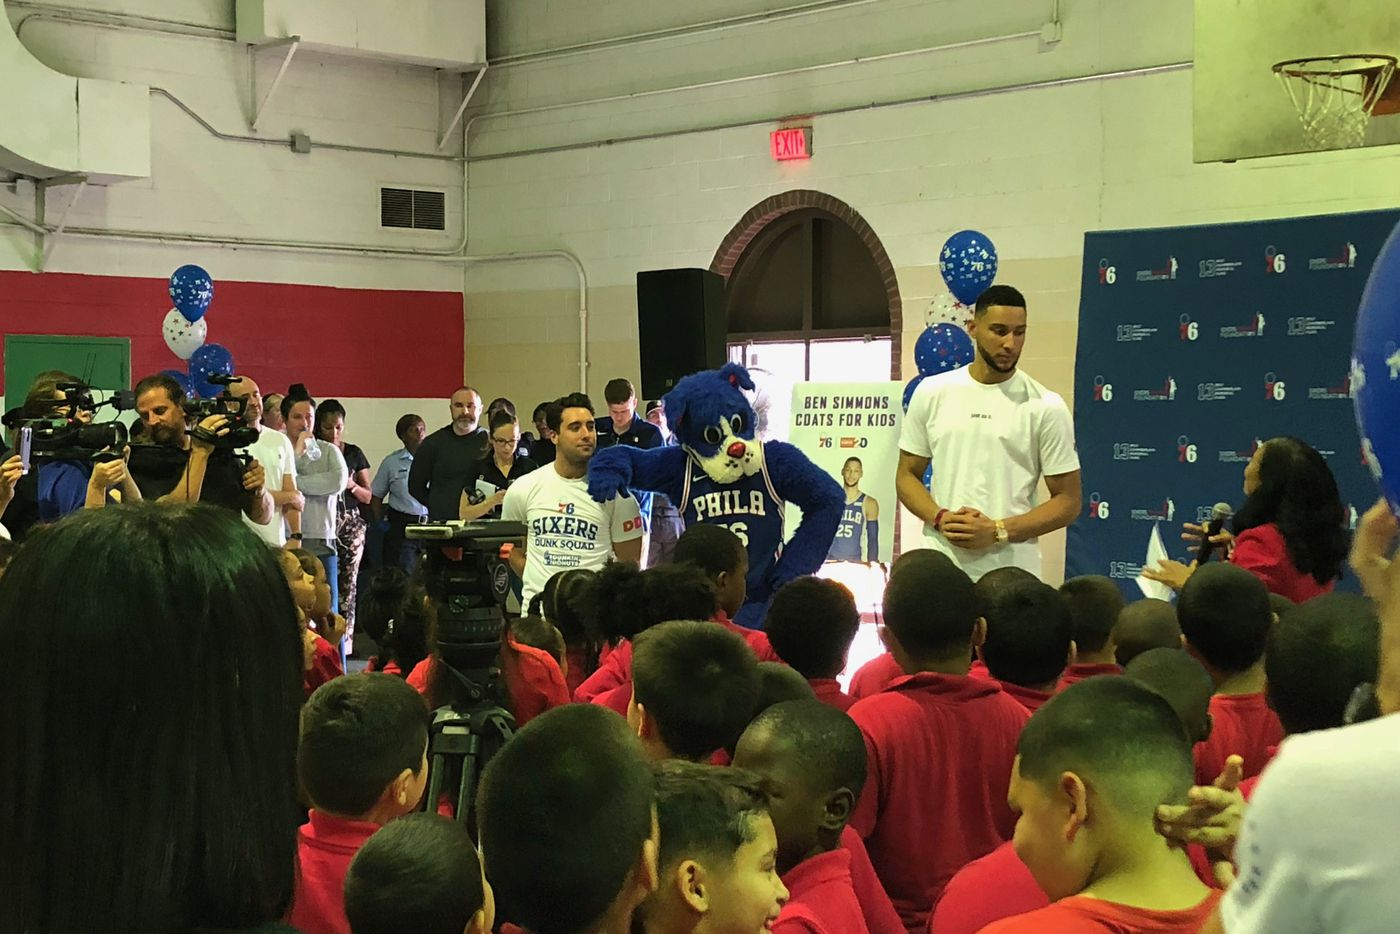 Ben Simmons surprises Cramp Elementary School students with coats